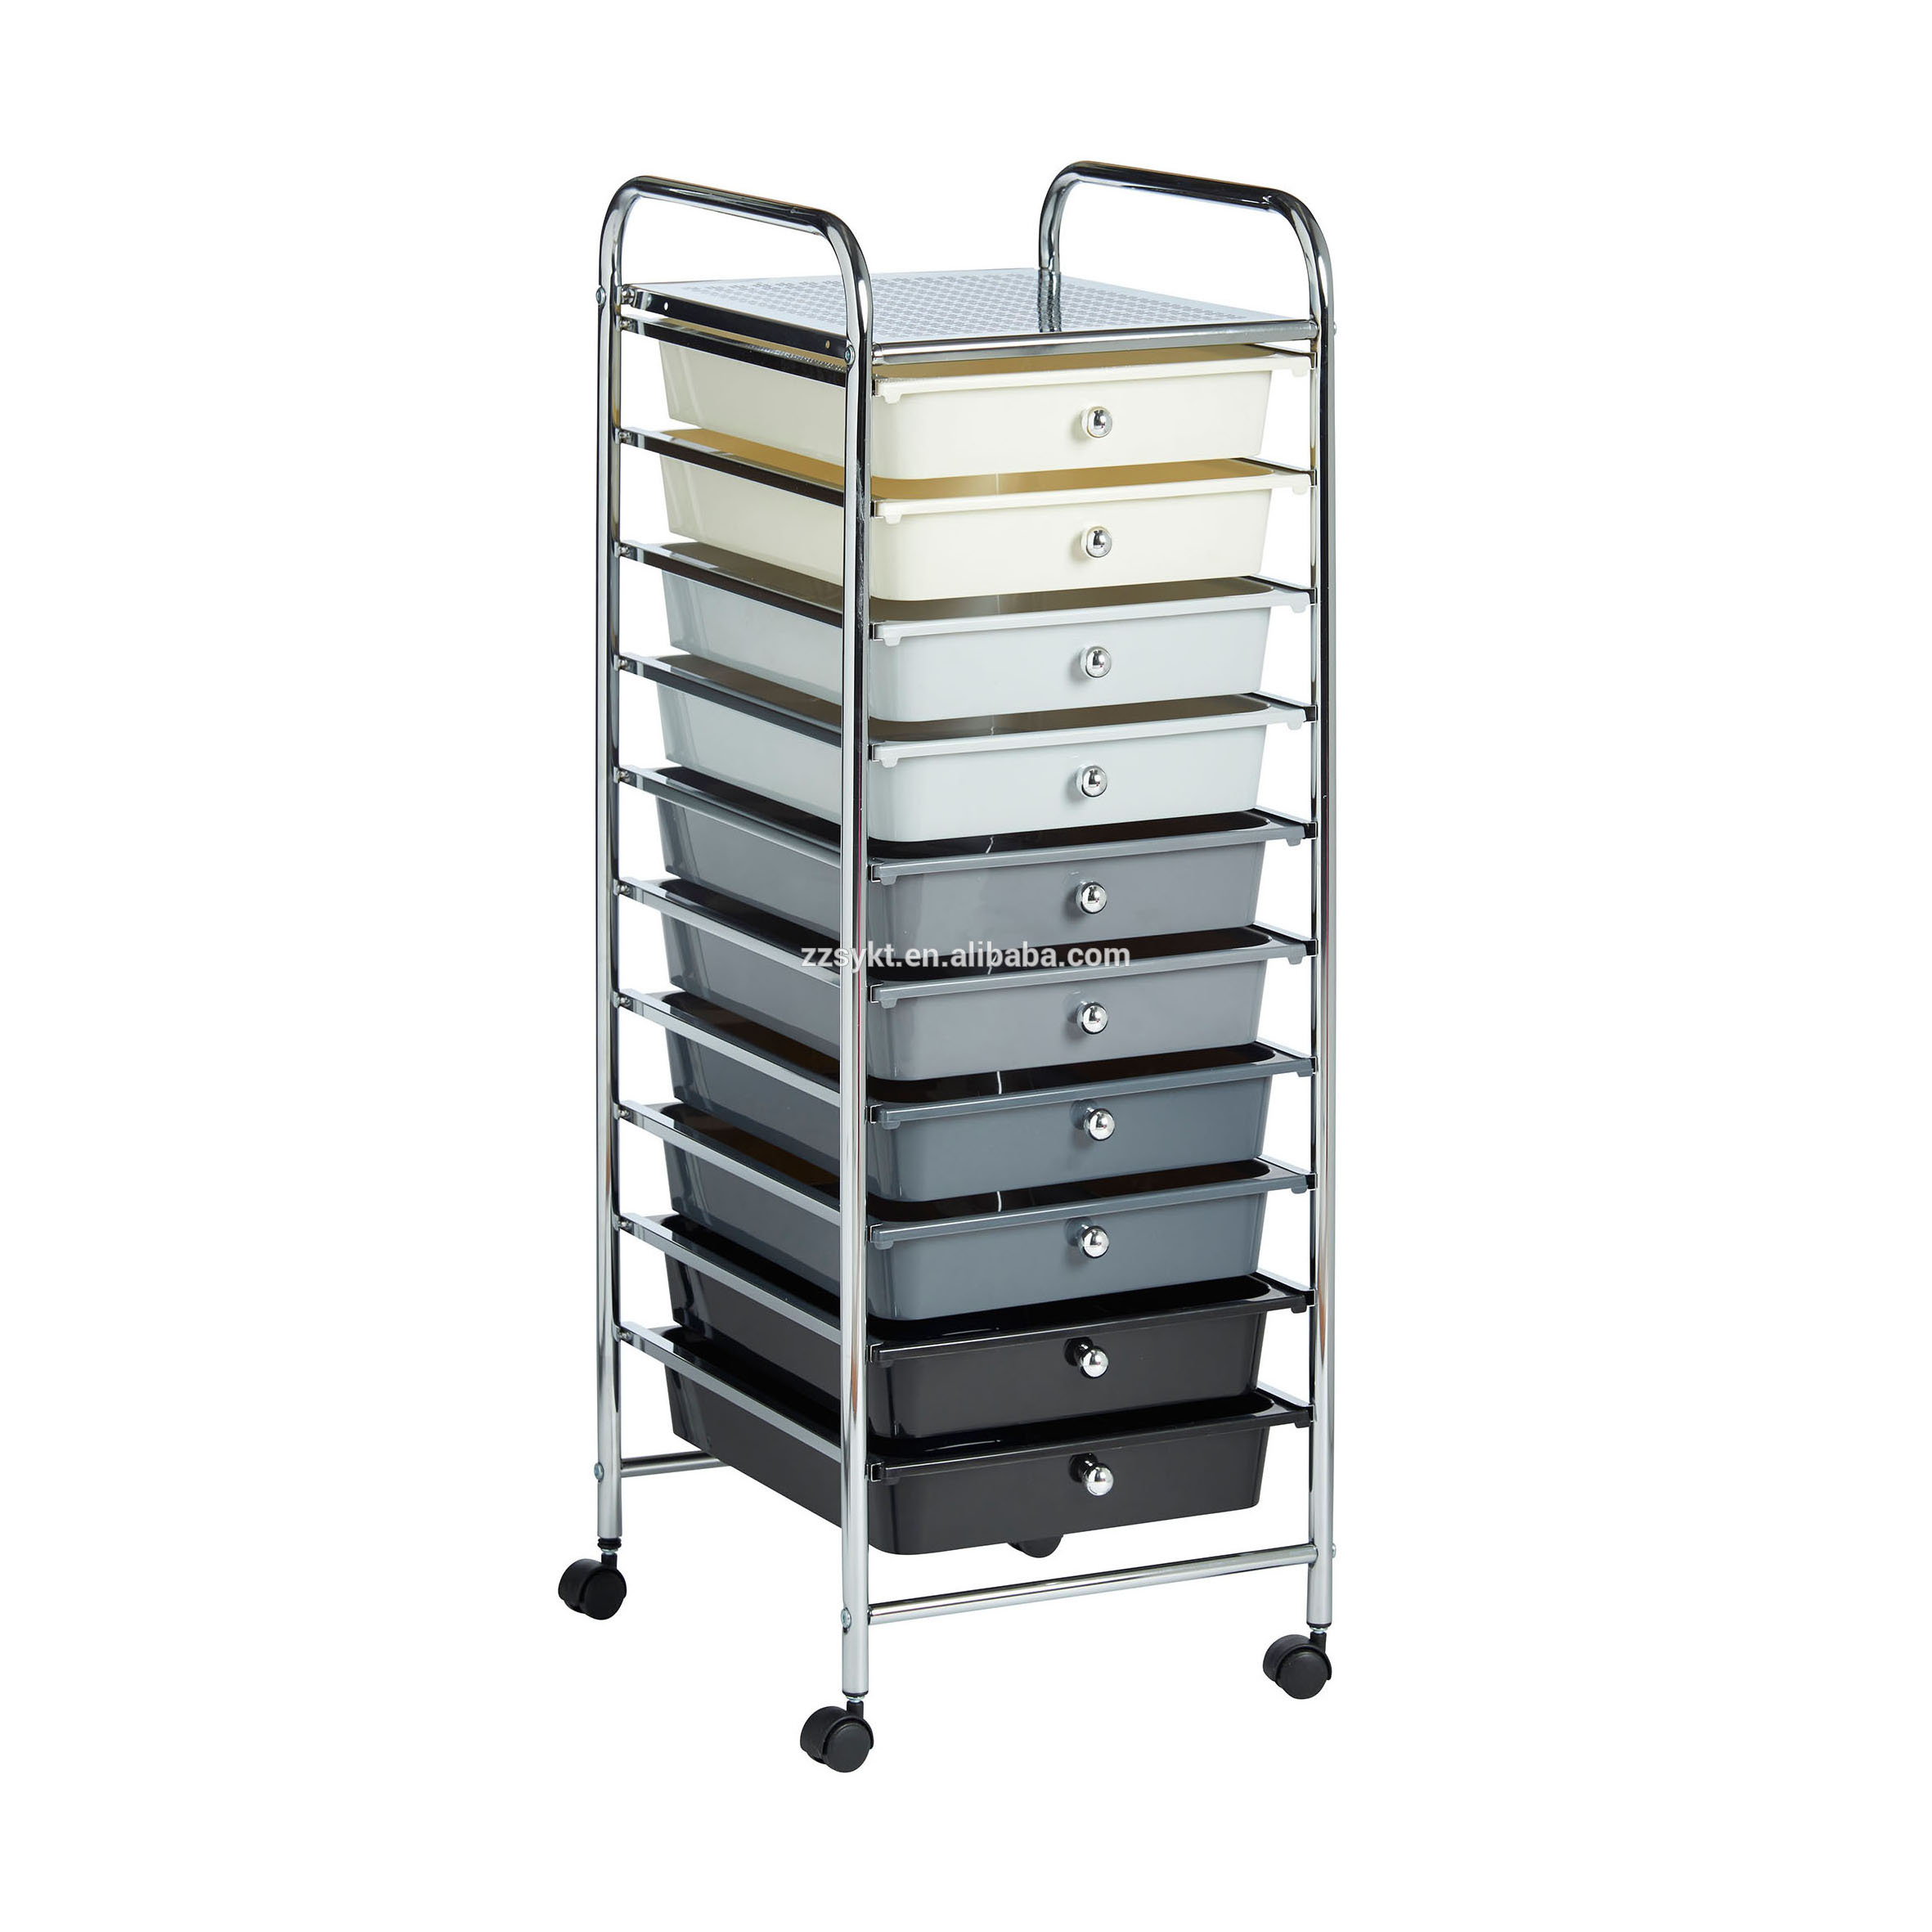 Beauty Trolleys 10 Plastic Drawers Rolling Hair Beauty Salon Storage Trolley Carts Buy Beauty Salon Trolleys Hair Salon Trolley Cart Metal Salon Trolley Product On